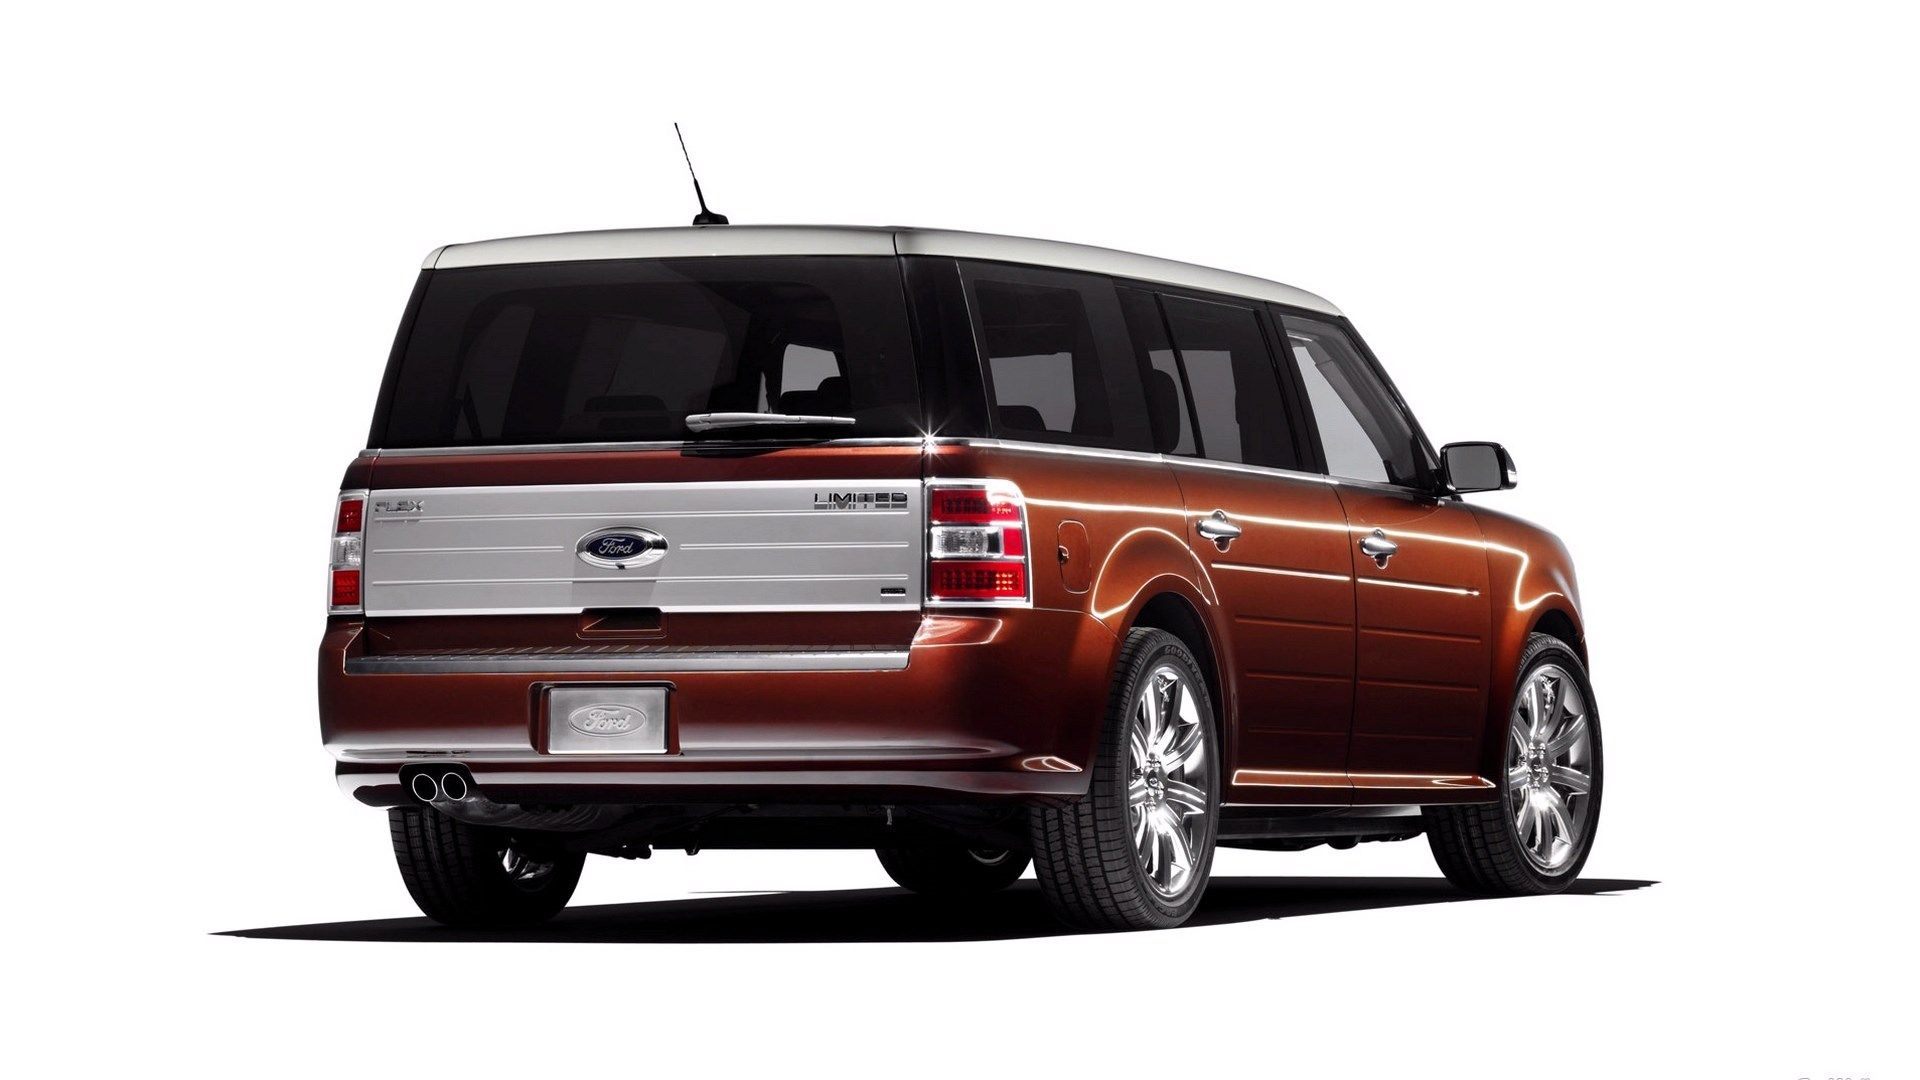 Ford flex limited 2010 hd wallpaper wallpapers pinterest ford flex and hd wallpaper